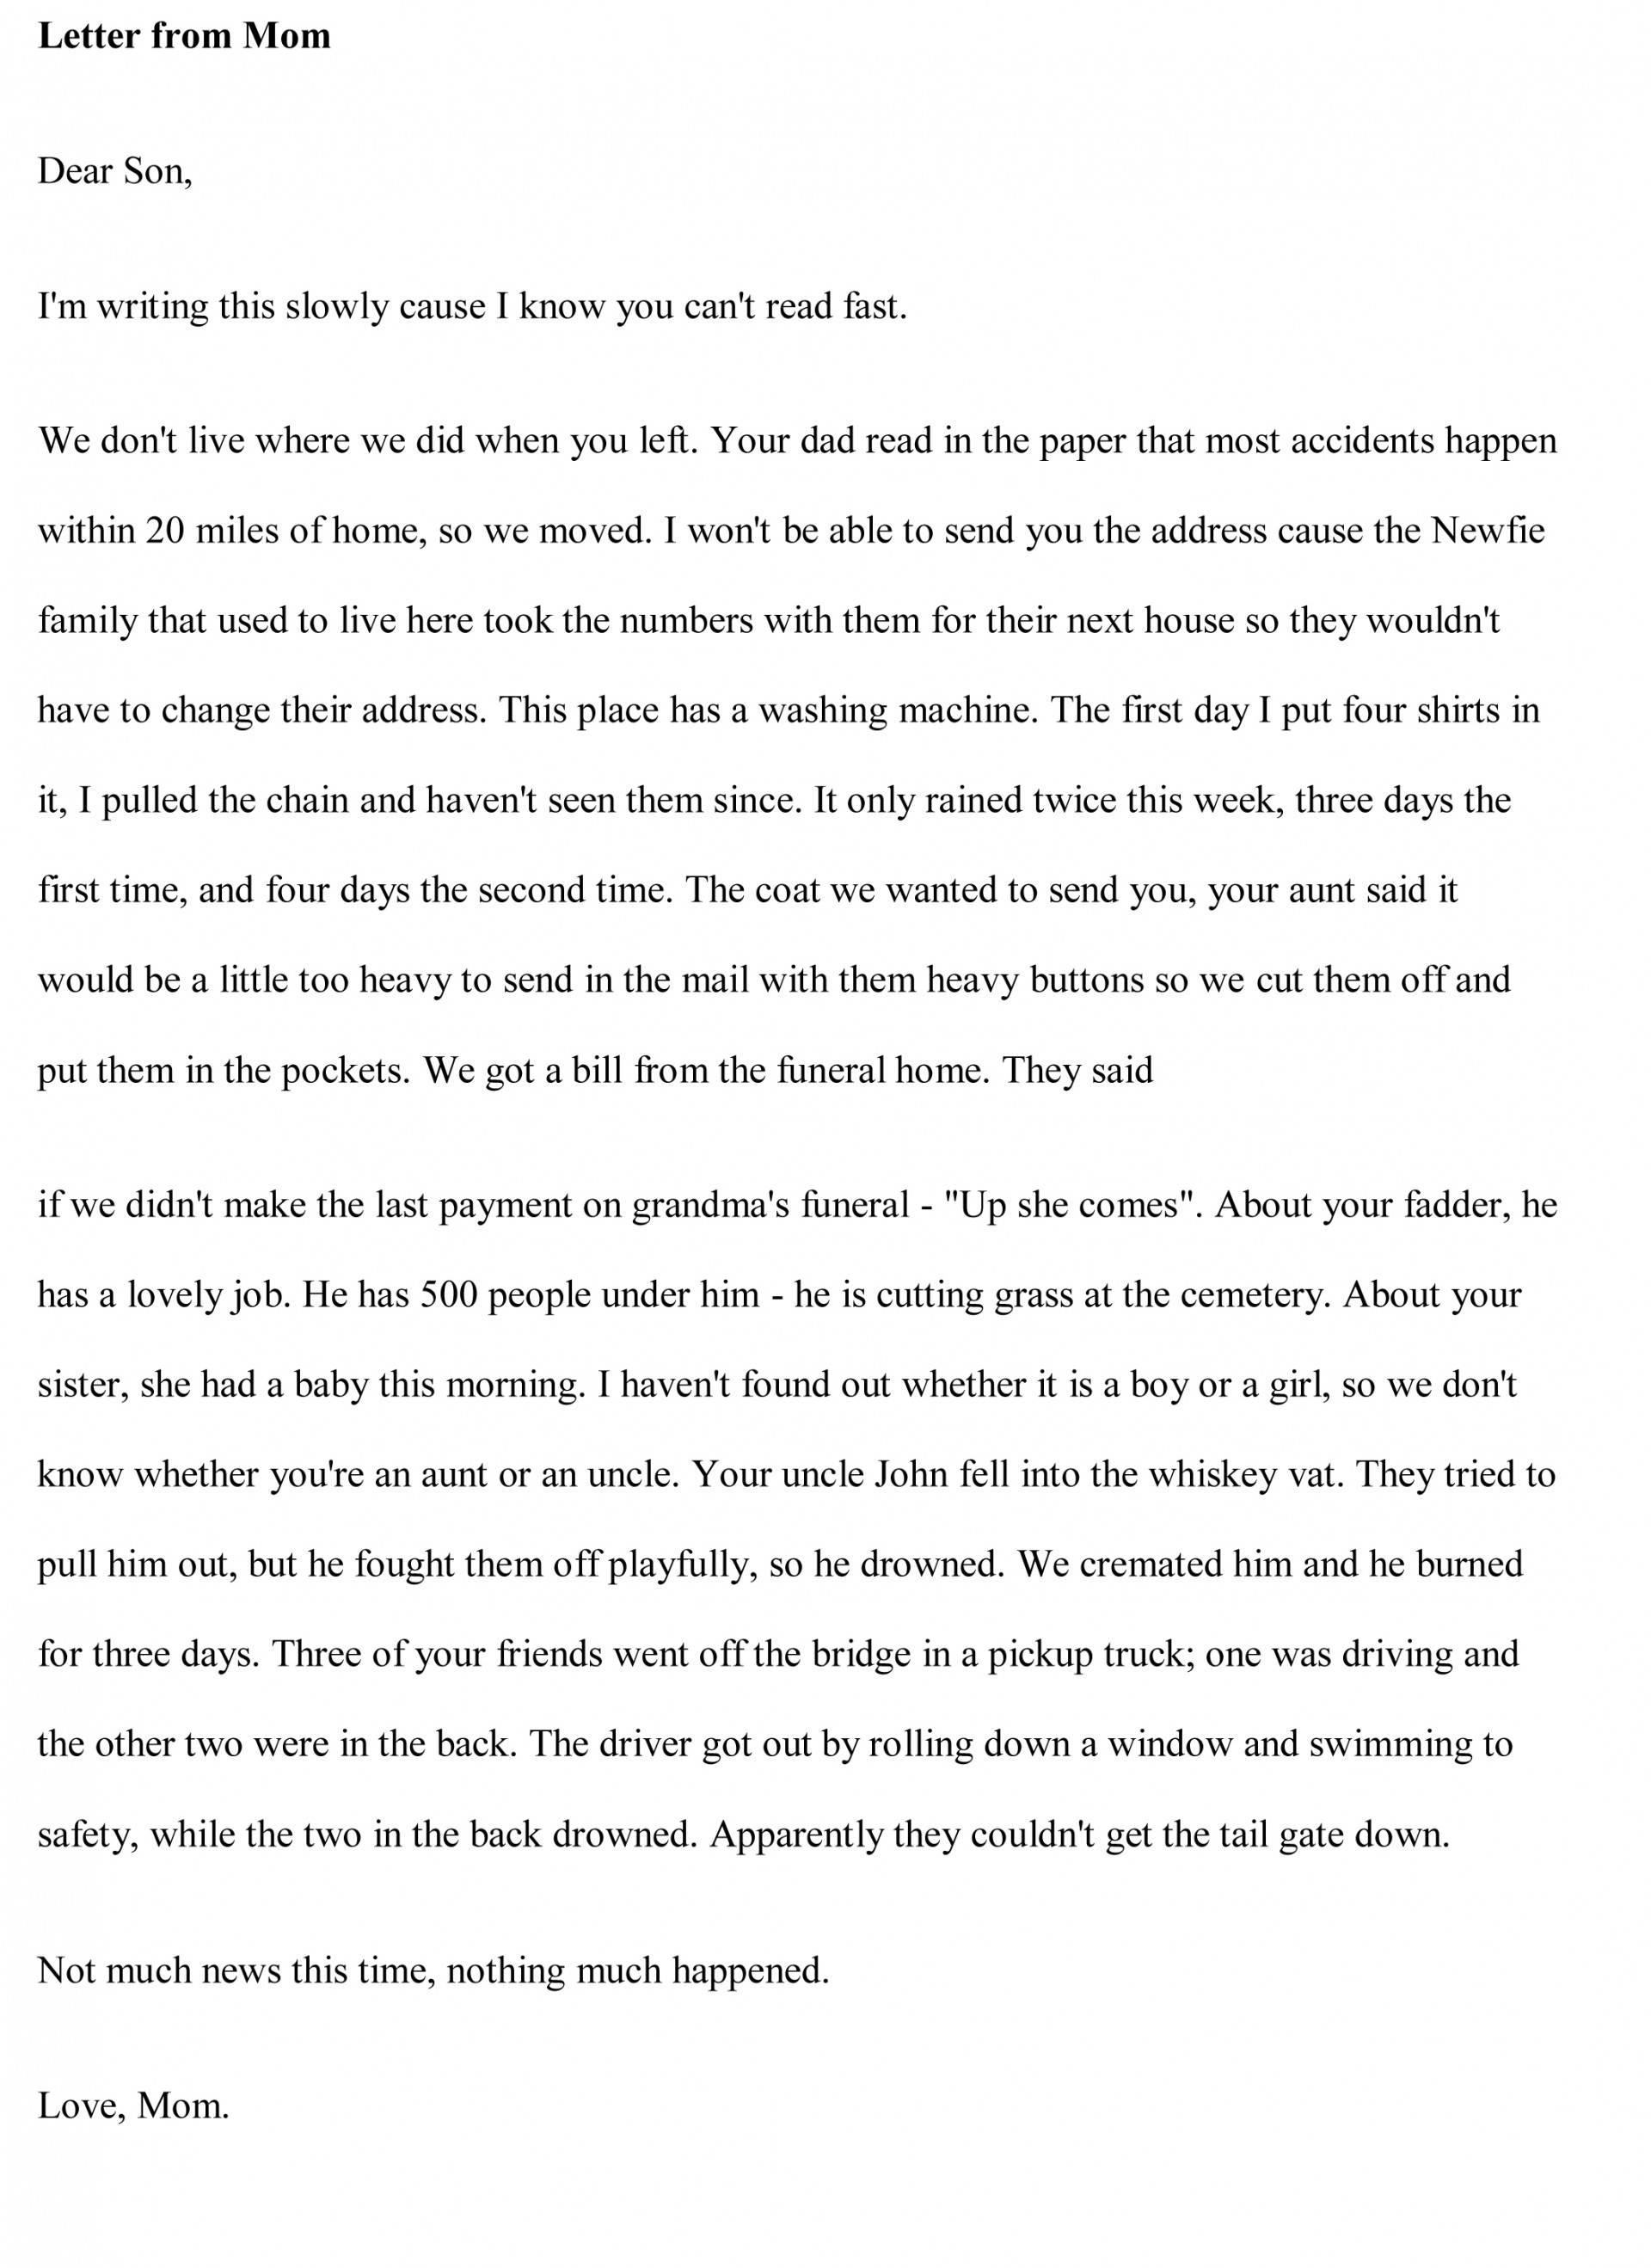 003 Essay Example Funny Essays Free Stupendous Examples Composition Topics On School Life 1920